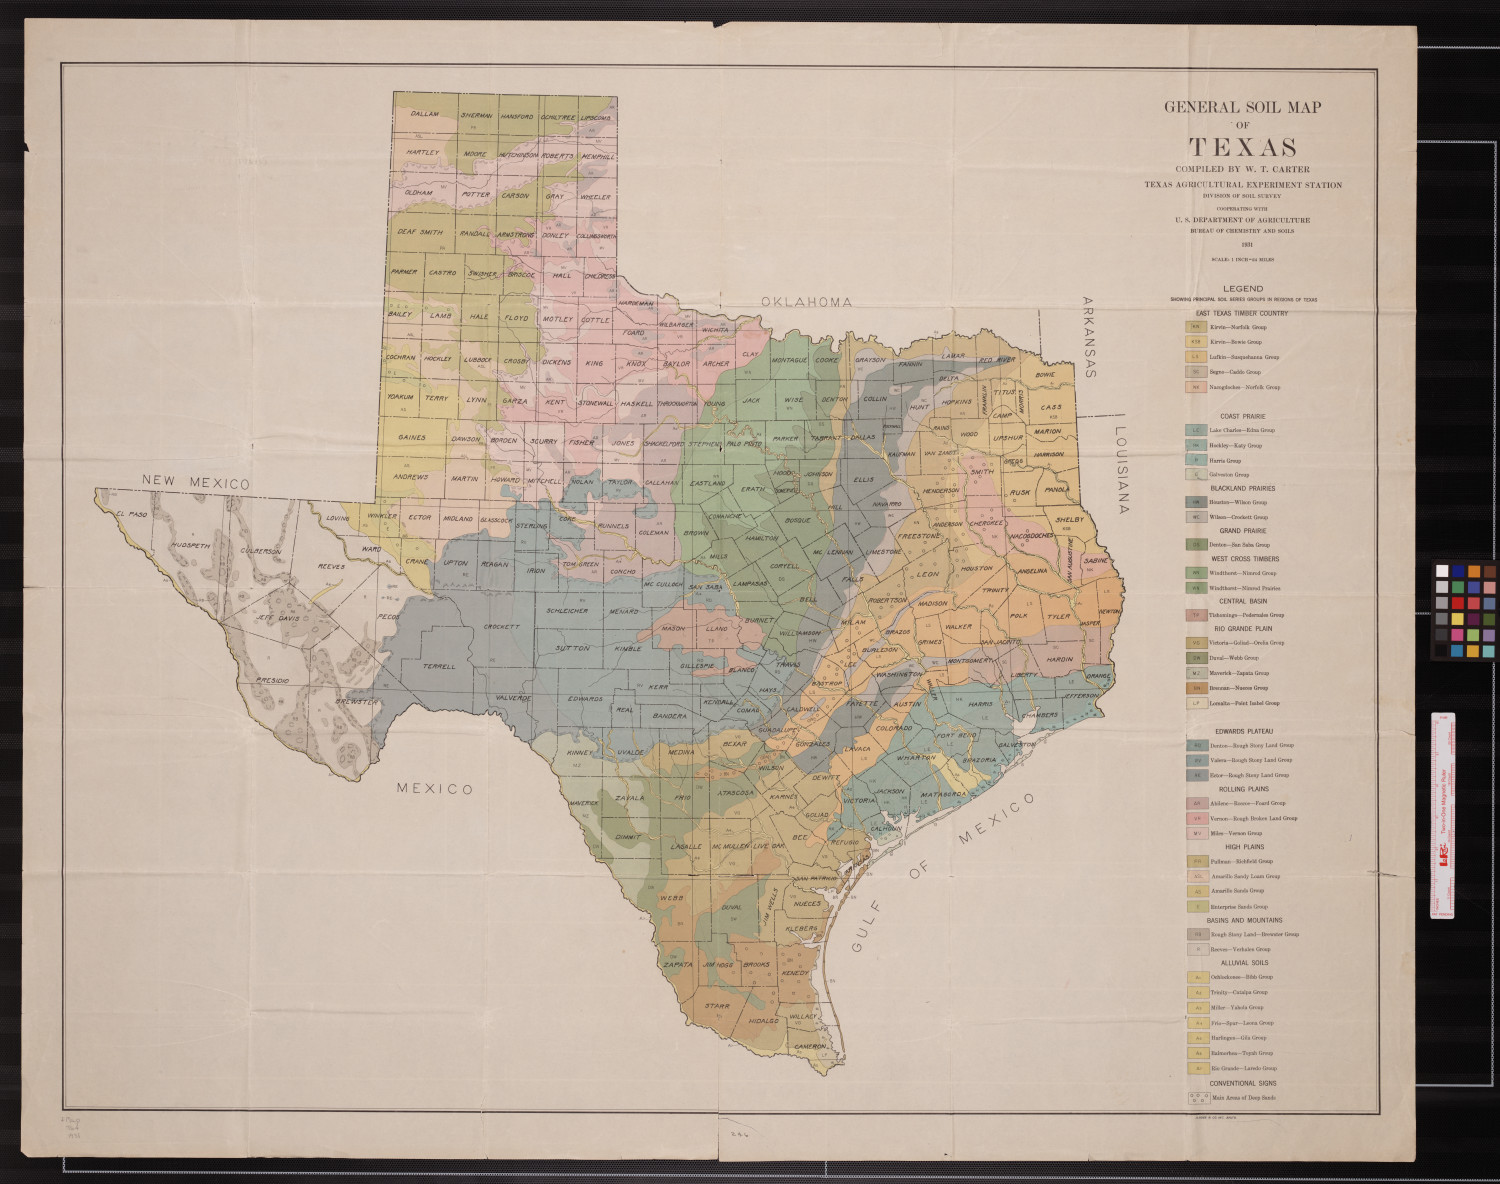 Full Map Of Texas.General Soil Map Of Texas Side 1 Of 1 The Portal To Texas History